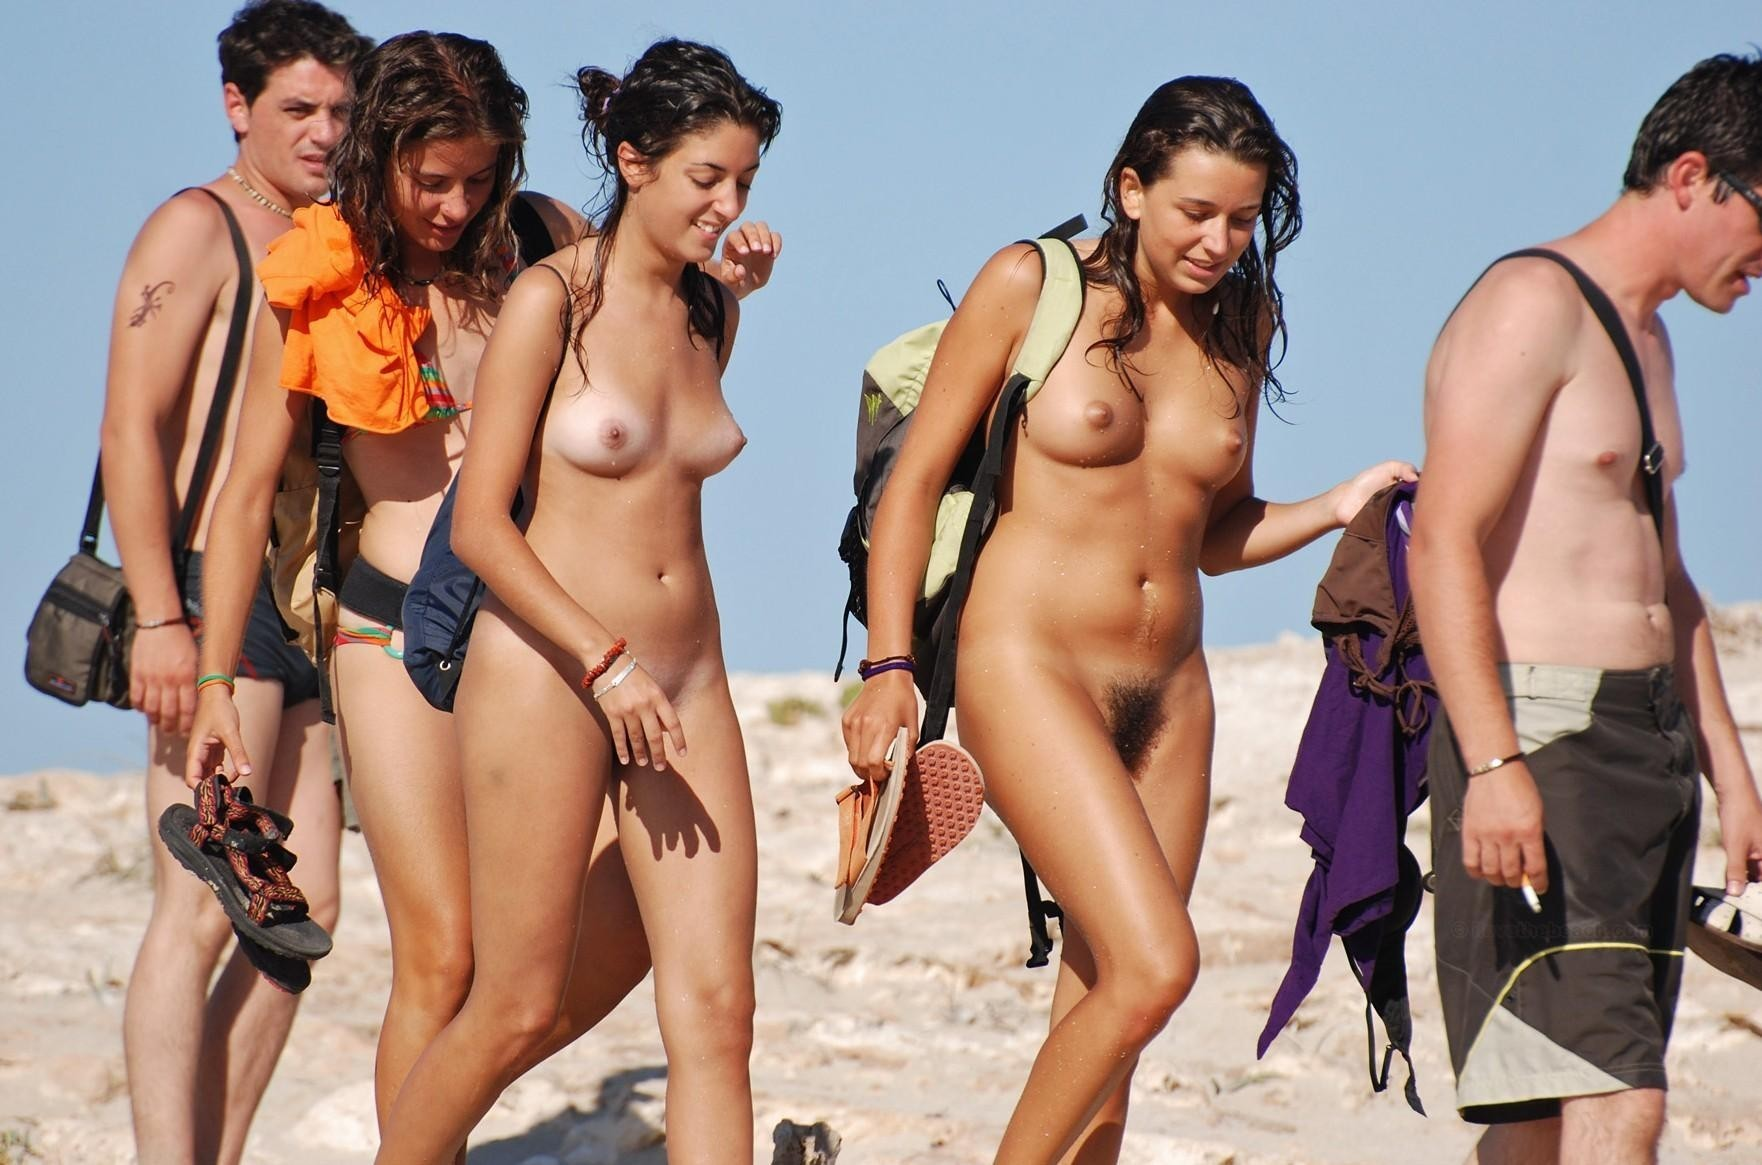 Twins and action nude beach pics